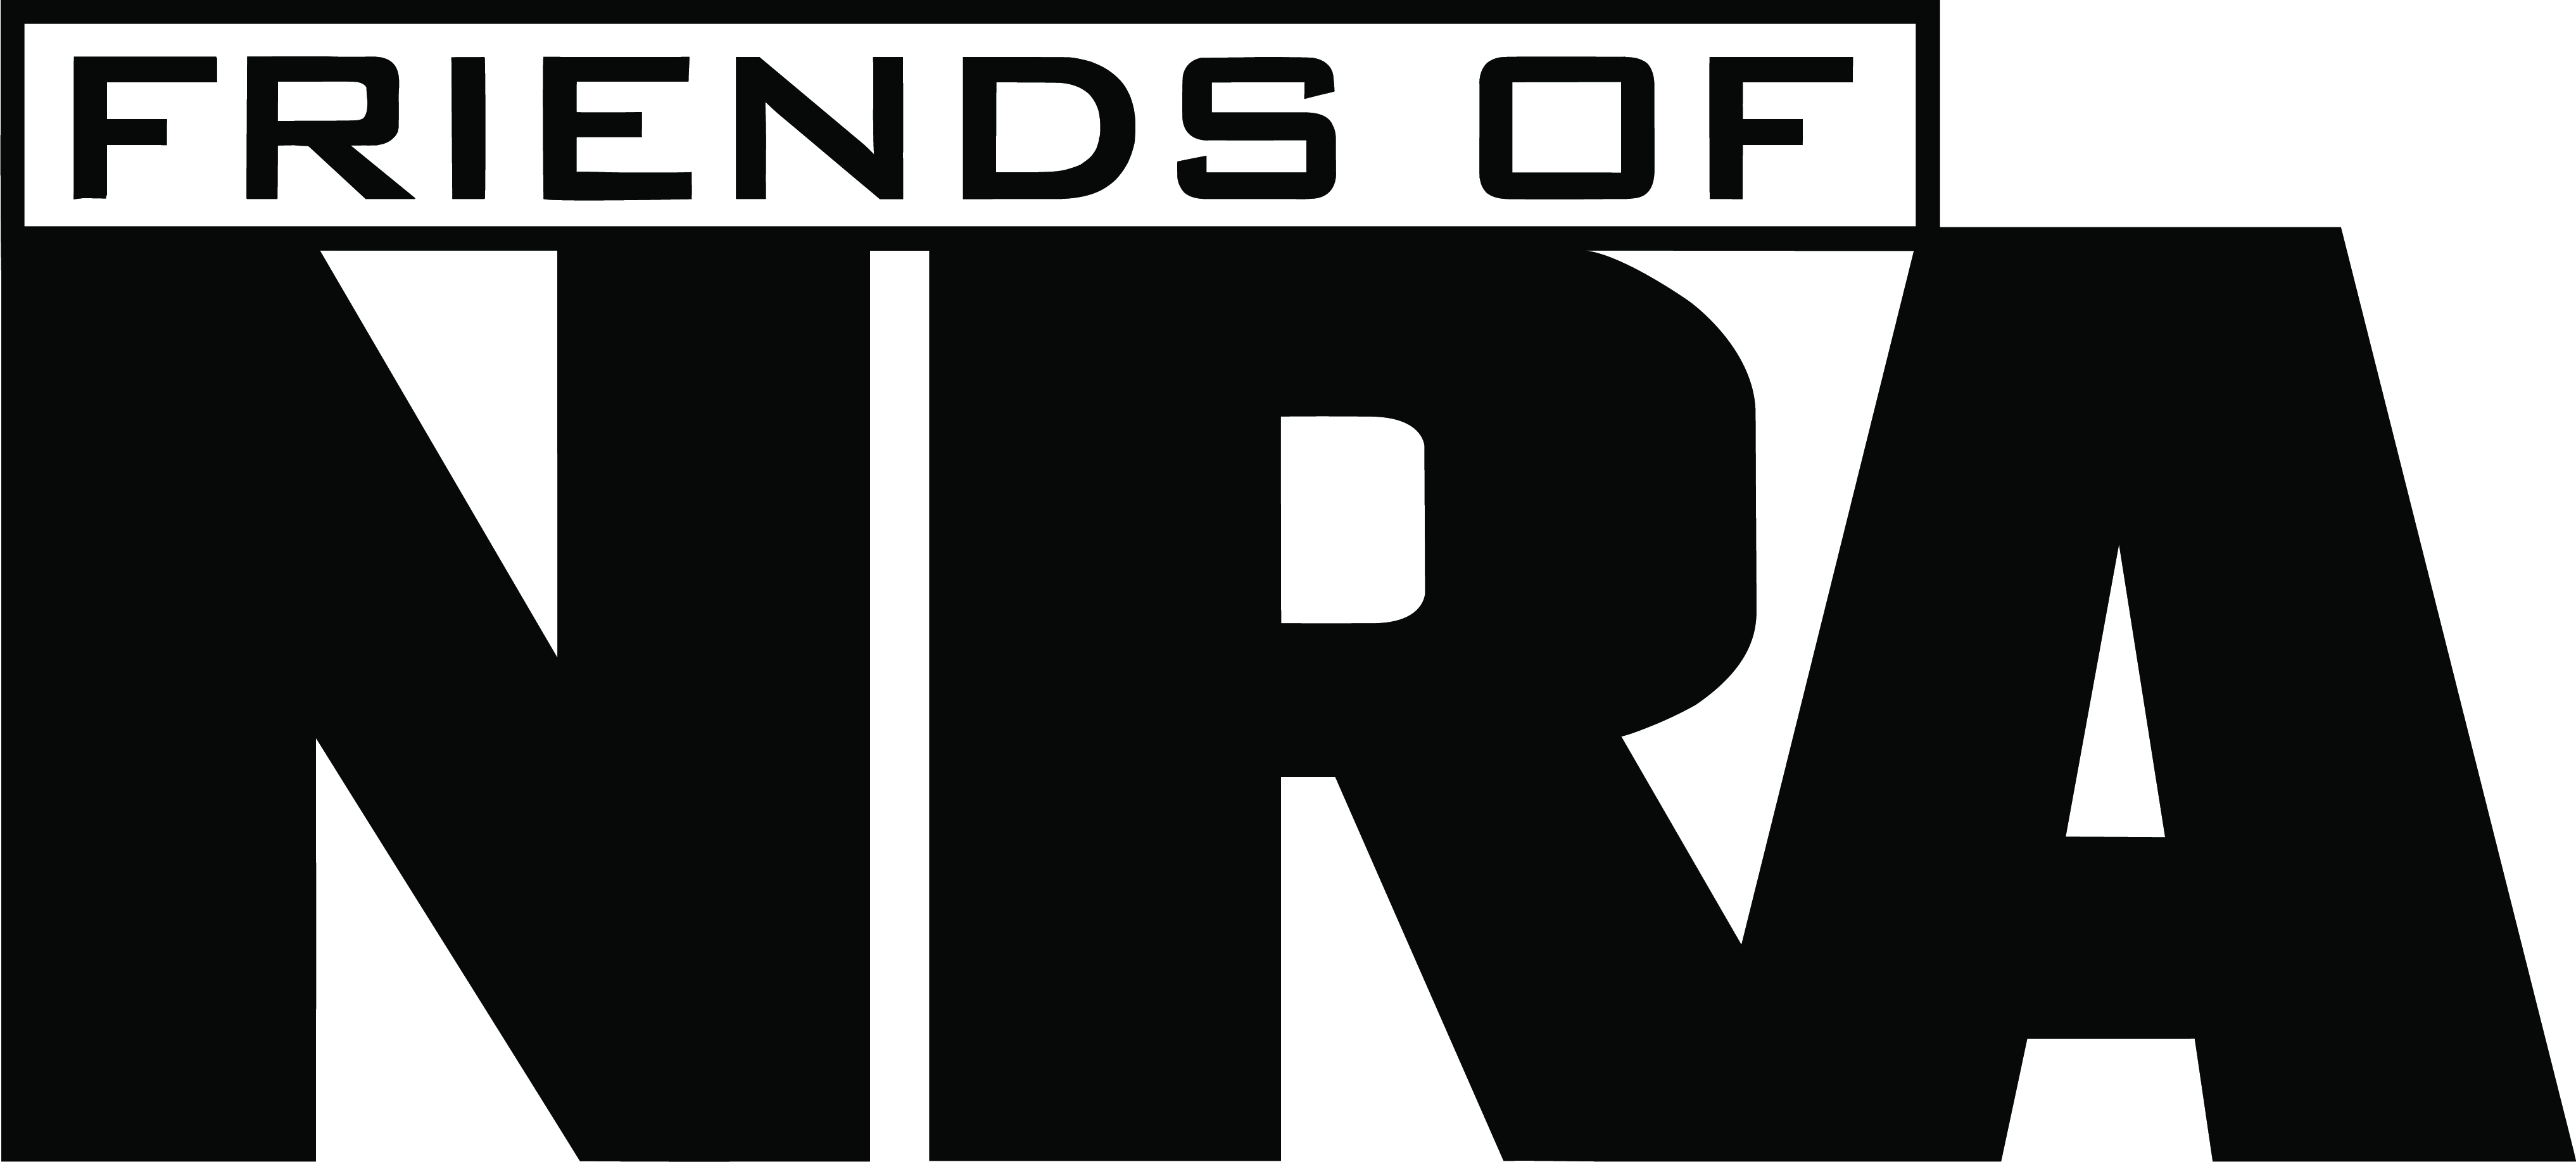 Nra Logo Download | www.pixshark.com - Images Galleries ...